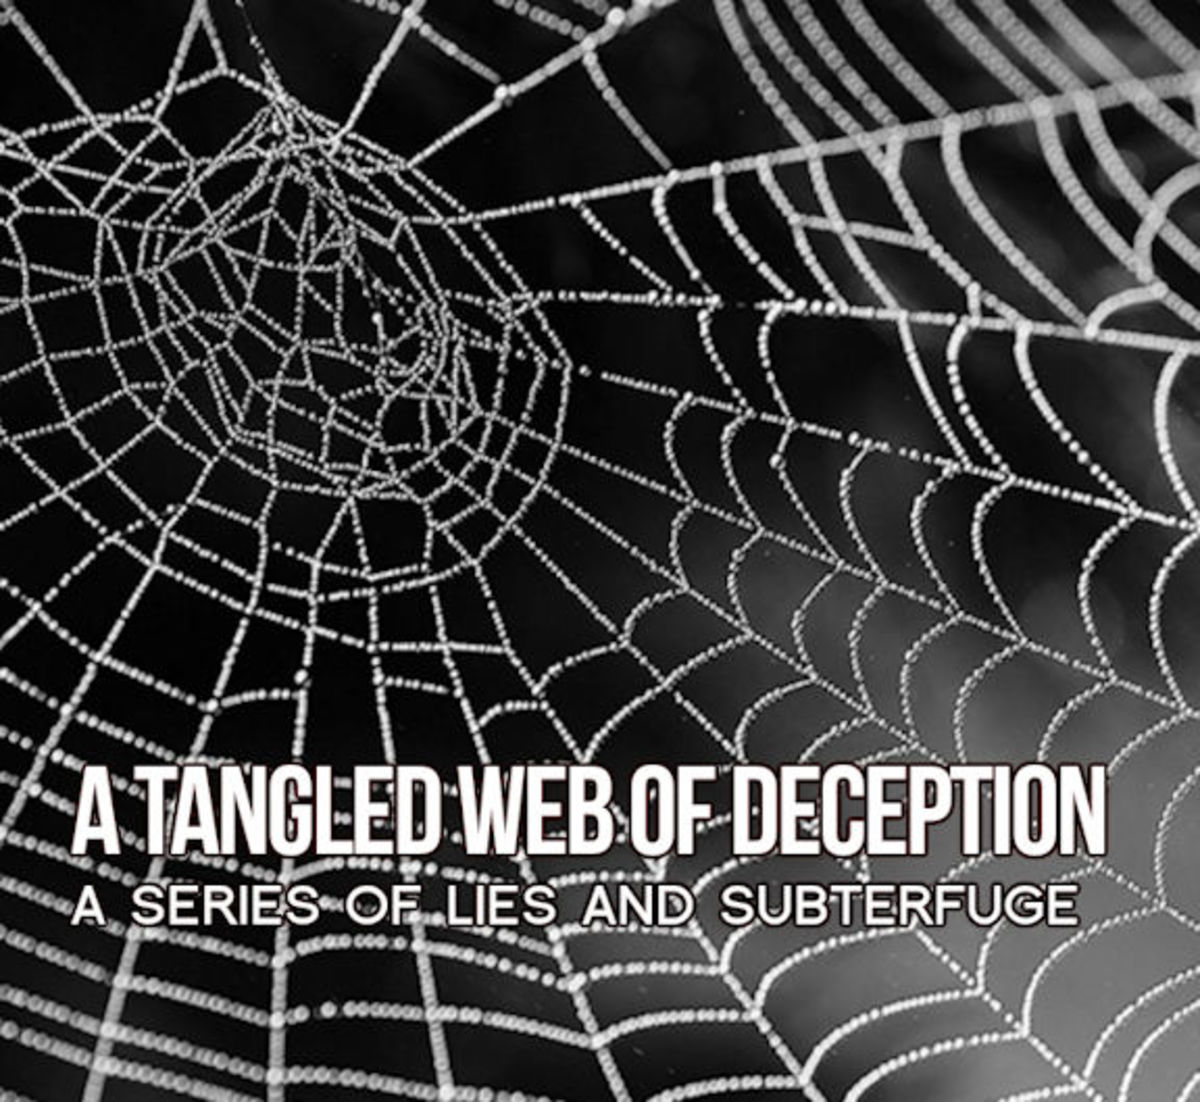 A Tangled Web Of Deception